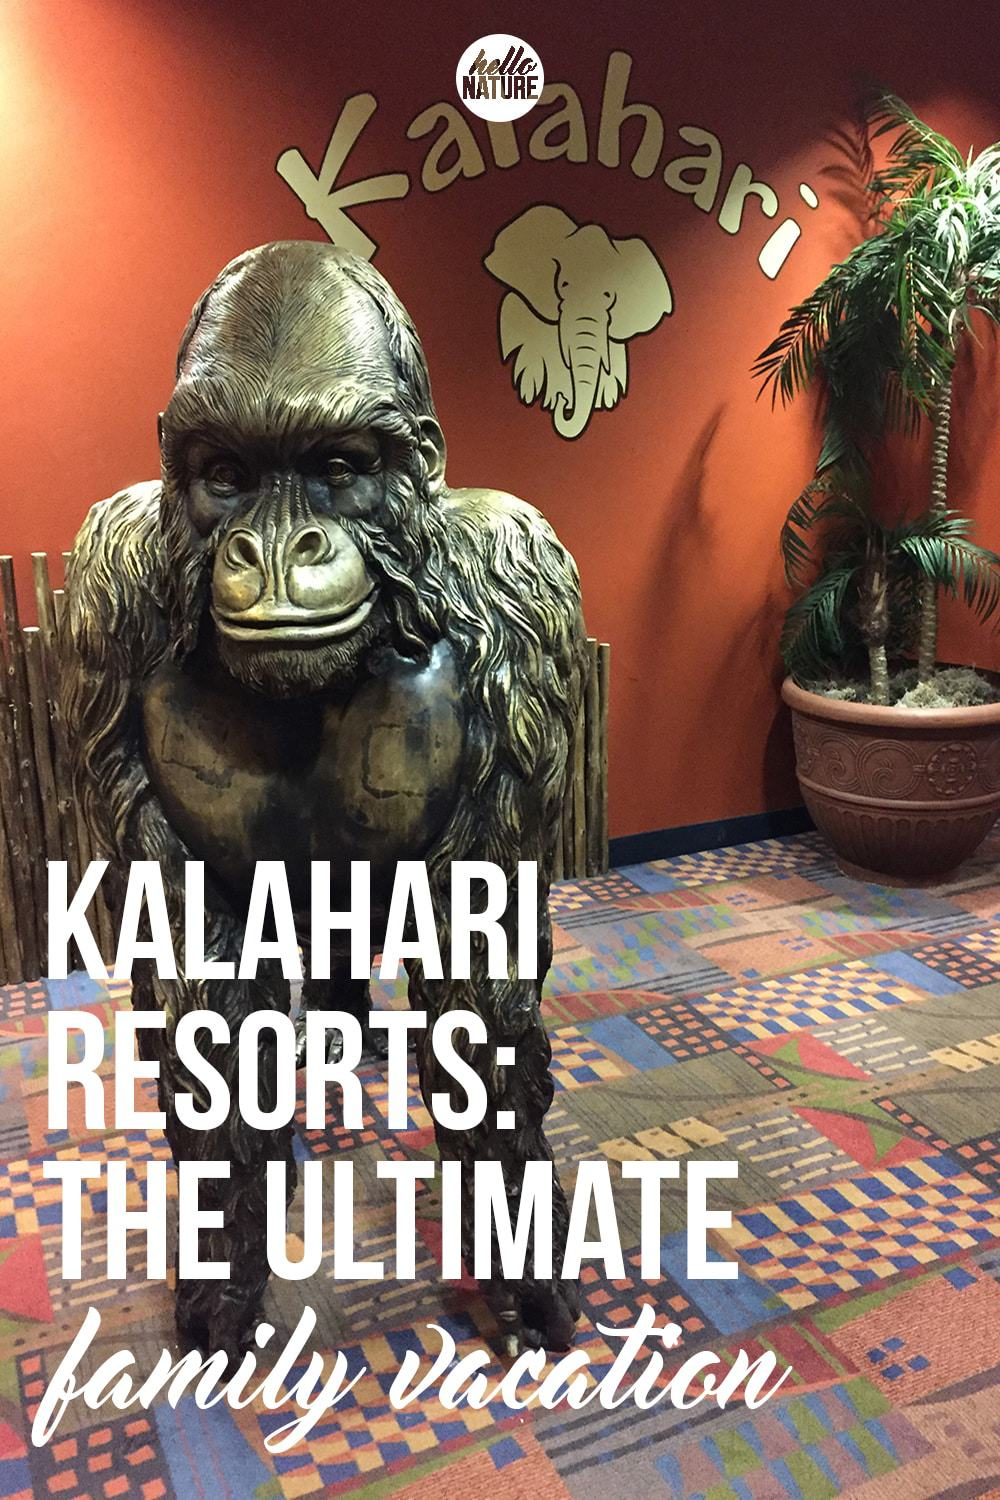 Not sure where to go for your next family trip? Kalahari Resorts are the ultimate family vacation! They've got something for everyone!